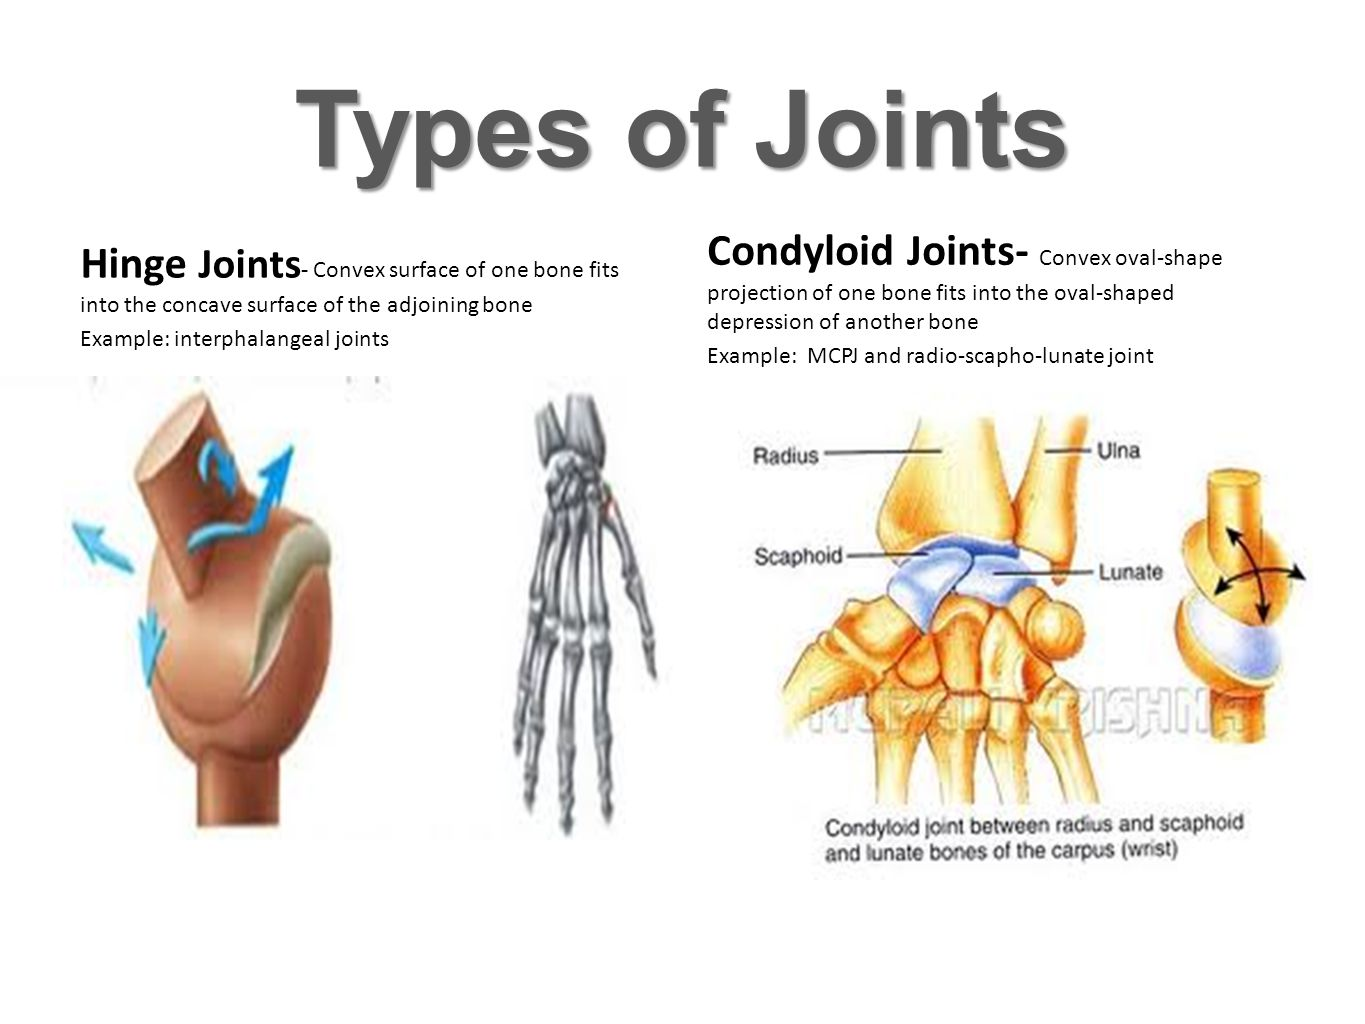 Types of Joints Hinge Joints- Convex surface of one bone fits into the concave surface of the adjoining bone.